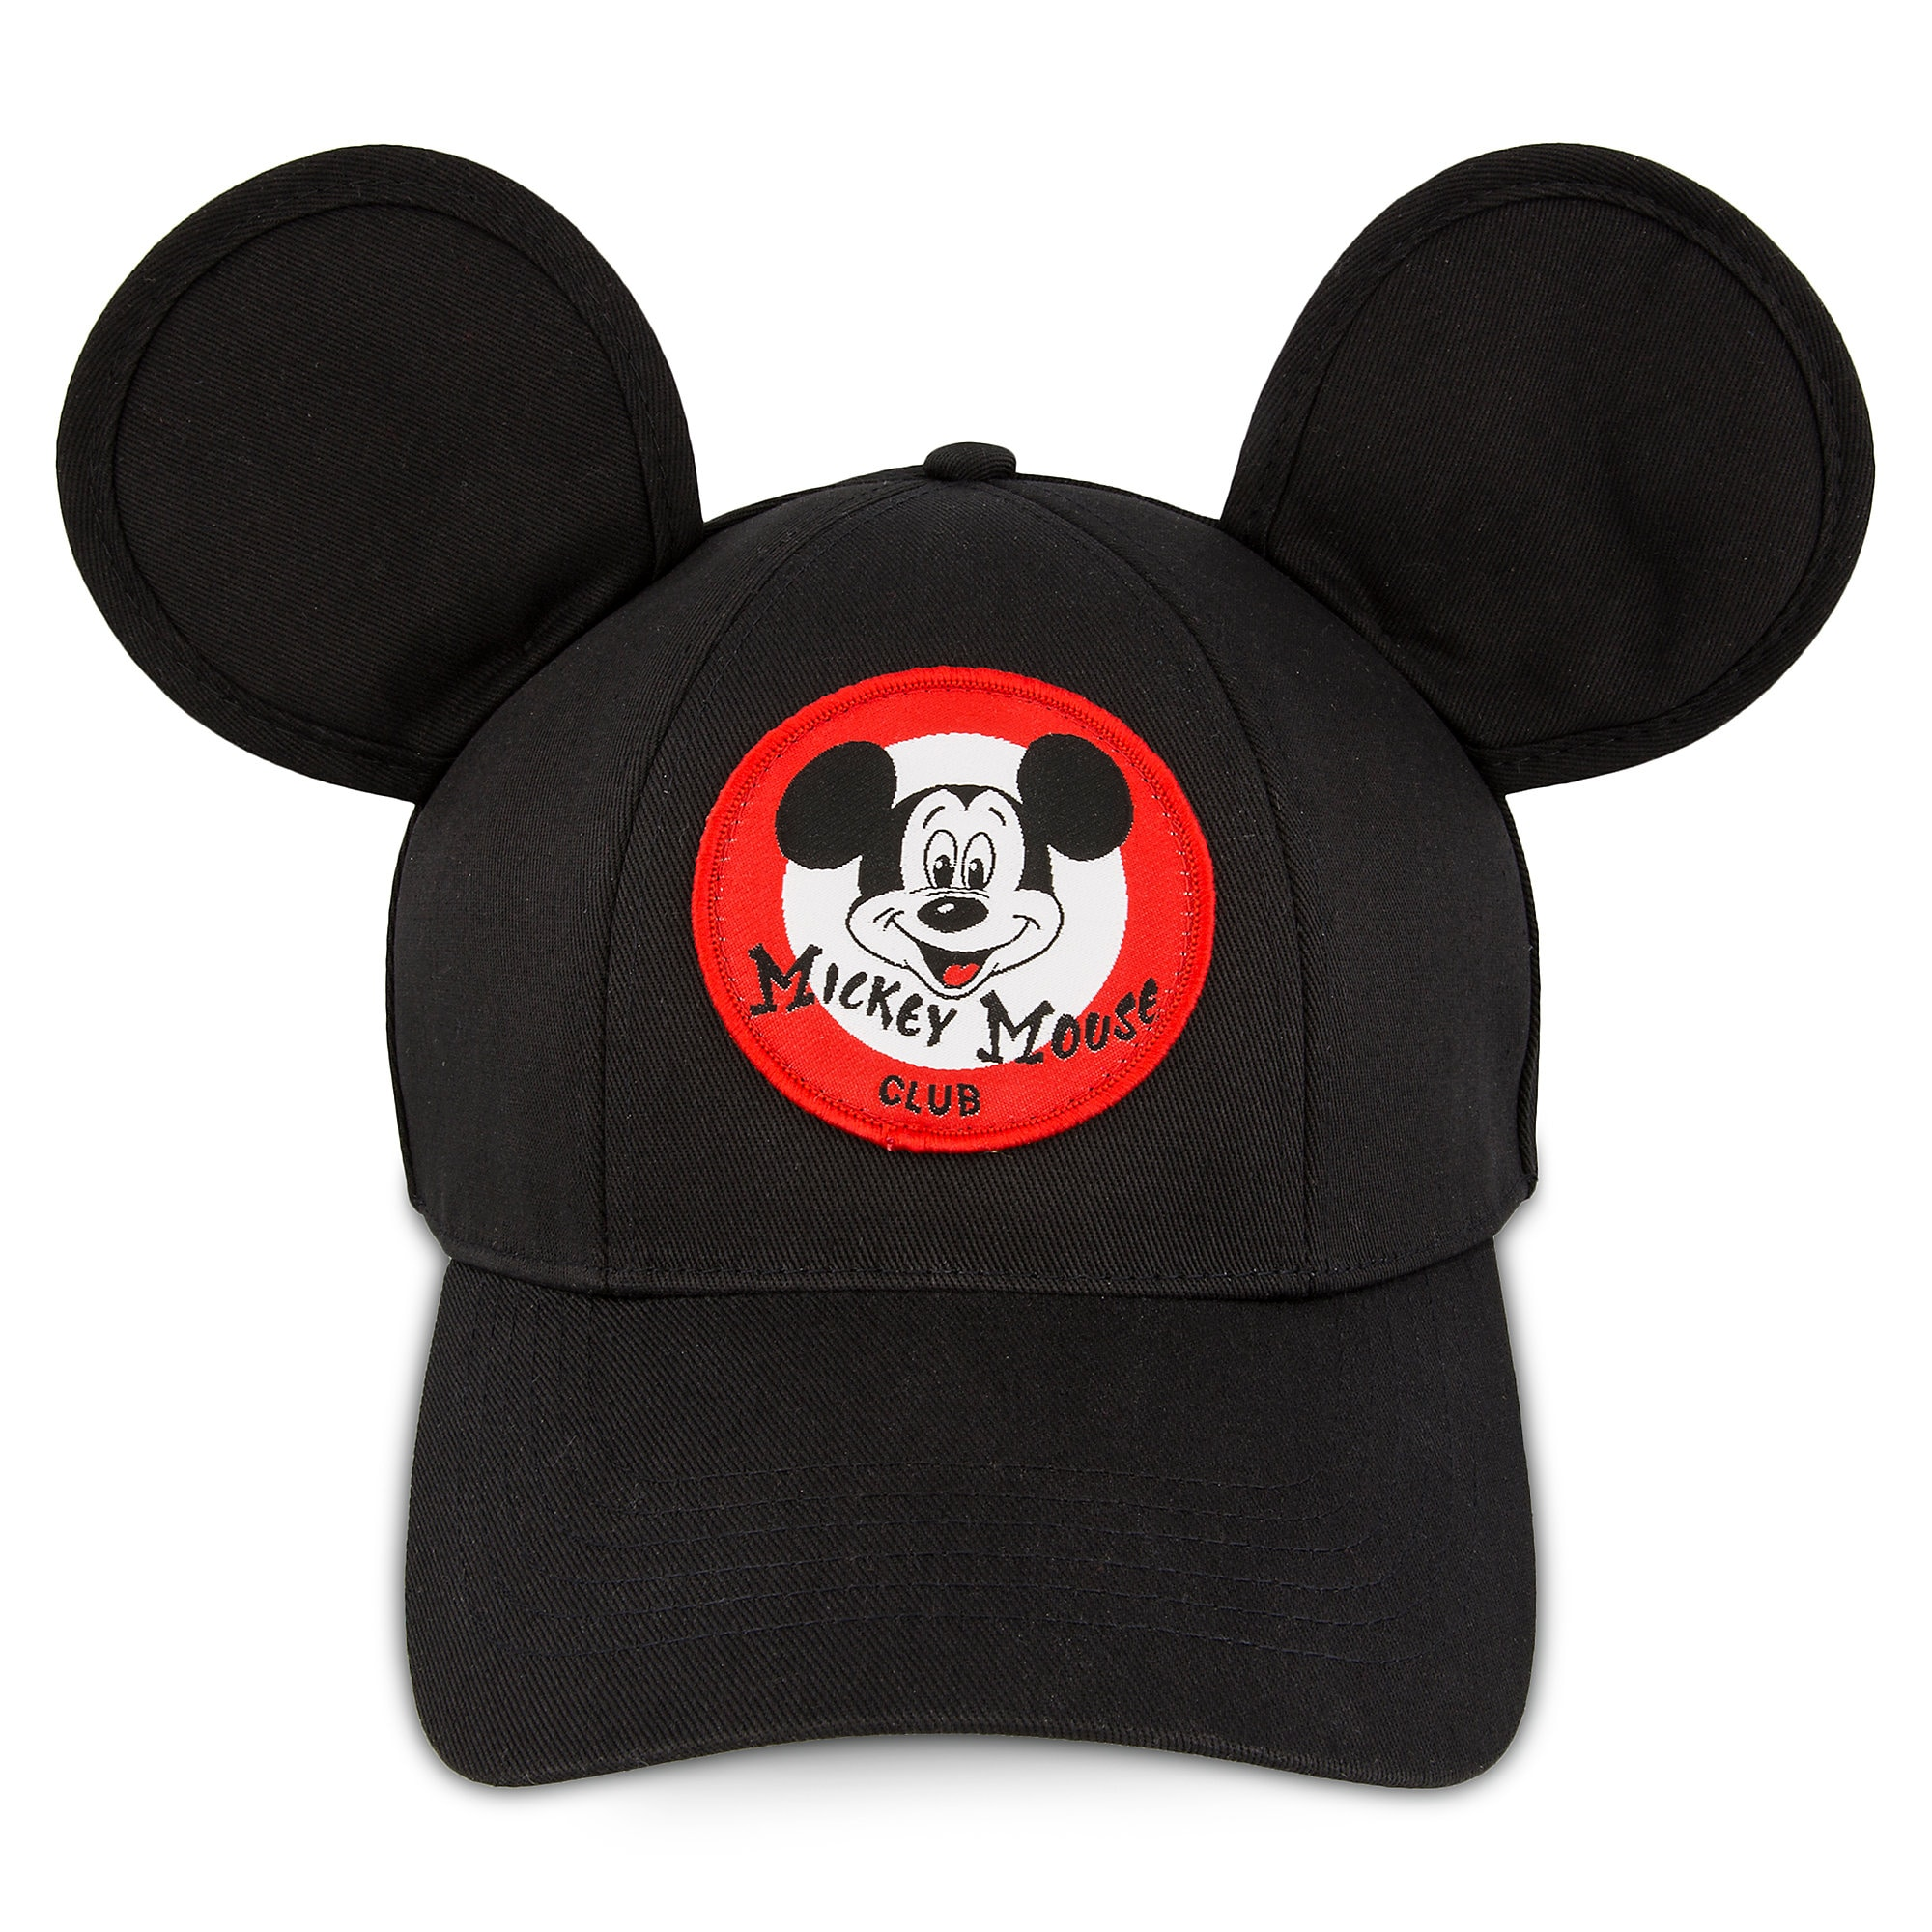 45d46772ce02d Mouseketeer Ear Baseball Cap for Adults - The Mickey Mouse Club ...